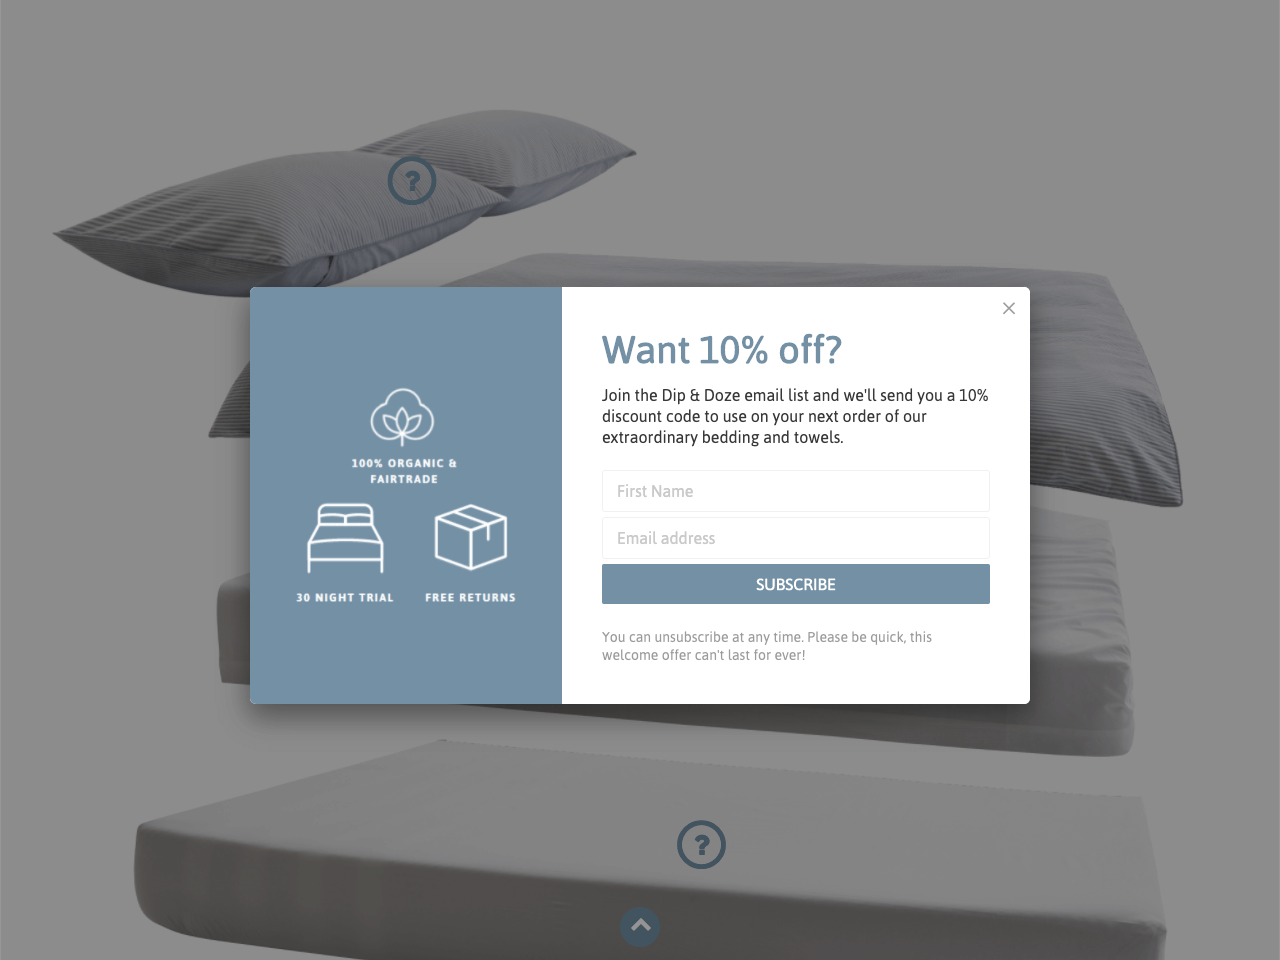 Dip & Doze use an email signup popup to boost conversions on a landing page